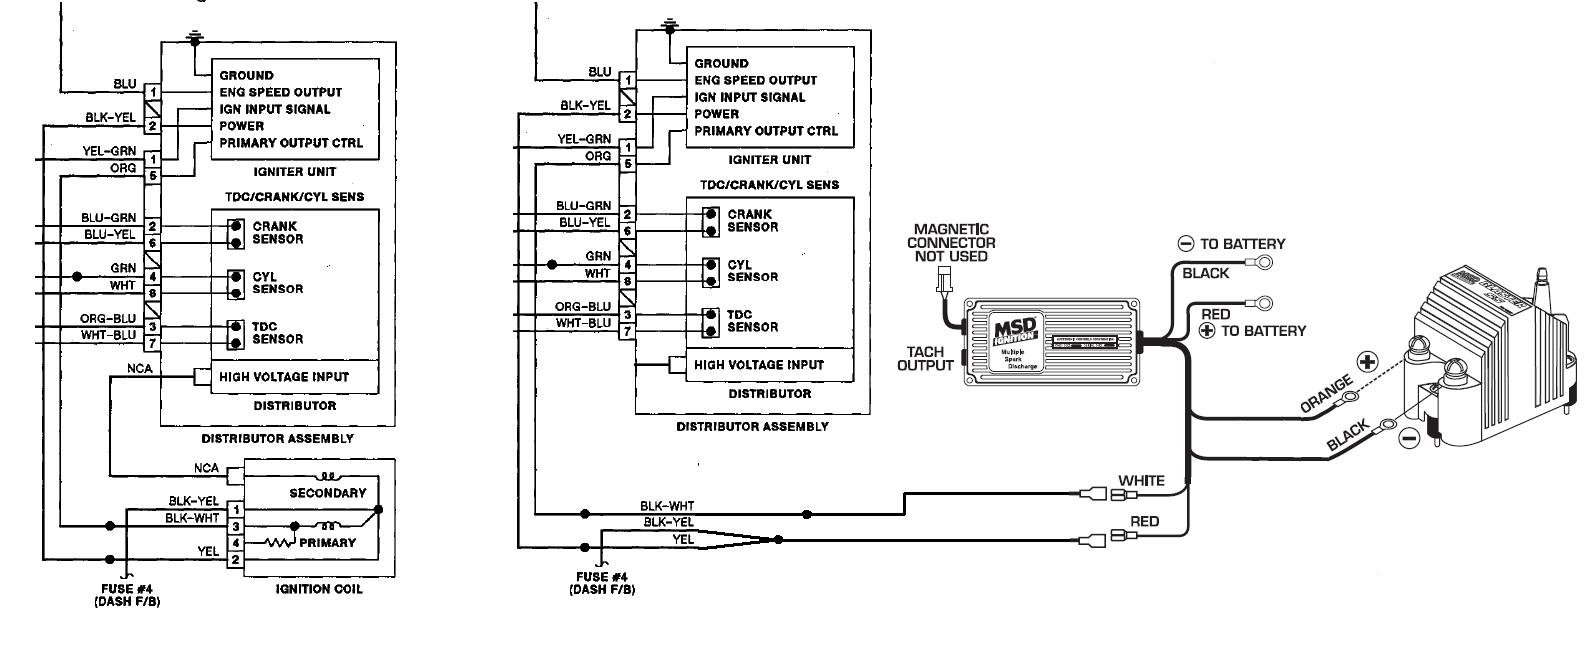 blog_diagrams_and_drawings_6_series_honda_1993_accord_6_ss_coil_2 msd 7al 2 wiring diagram chevy ignition msd 7al2 for sale \u2022 45 63 msd 7al-2 wiring diagram 7220 at creativeand.co